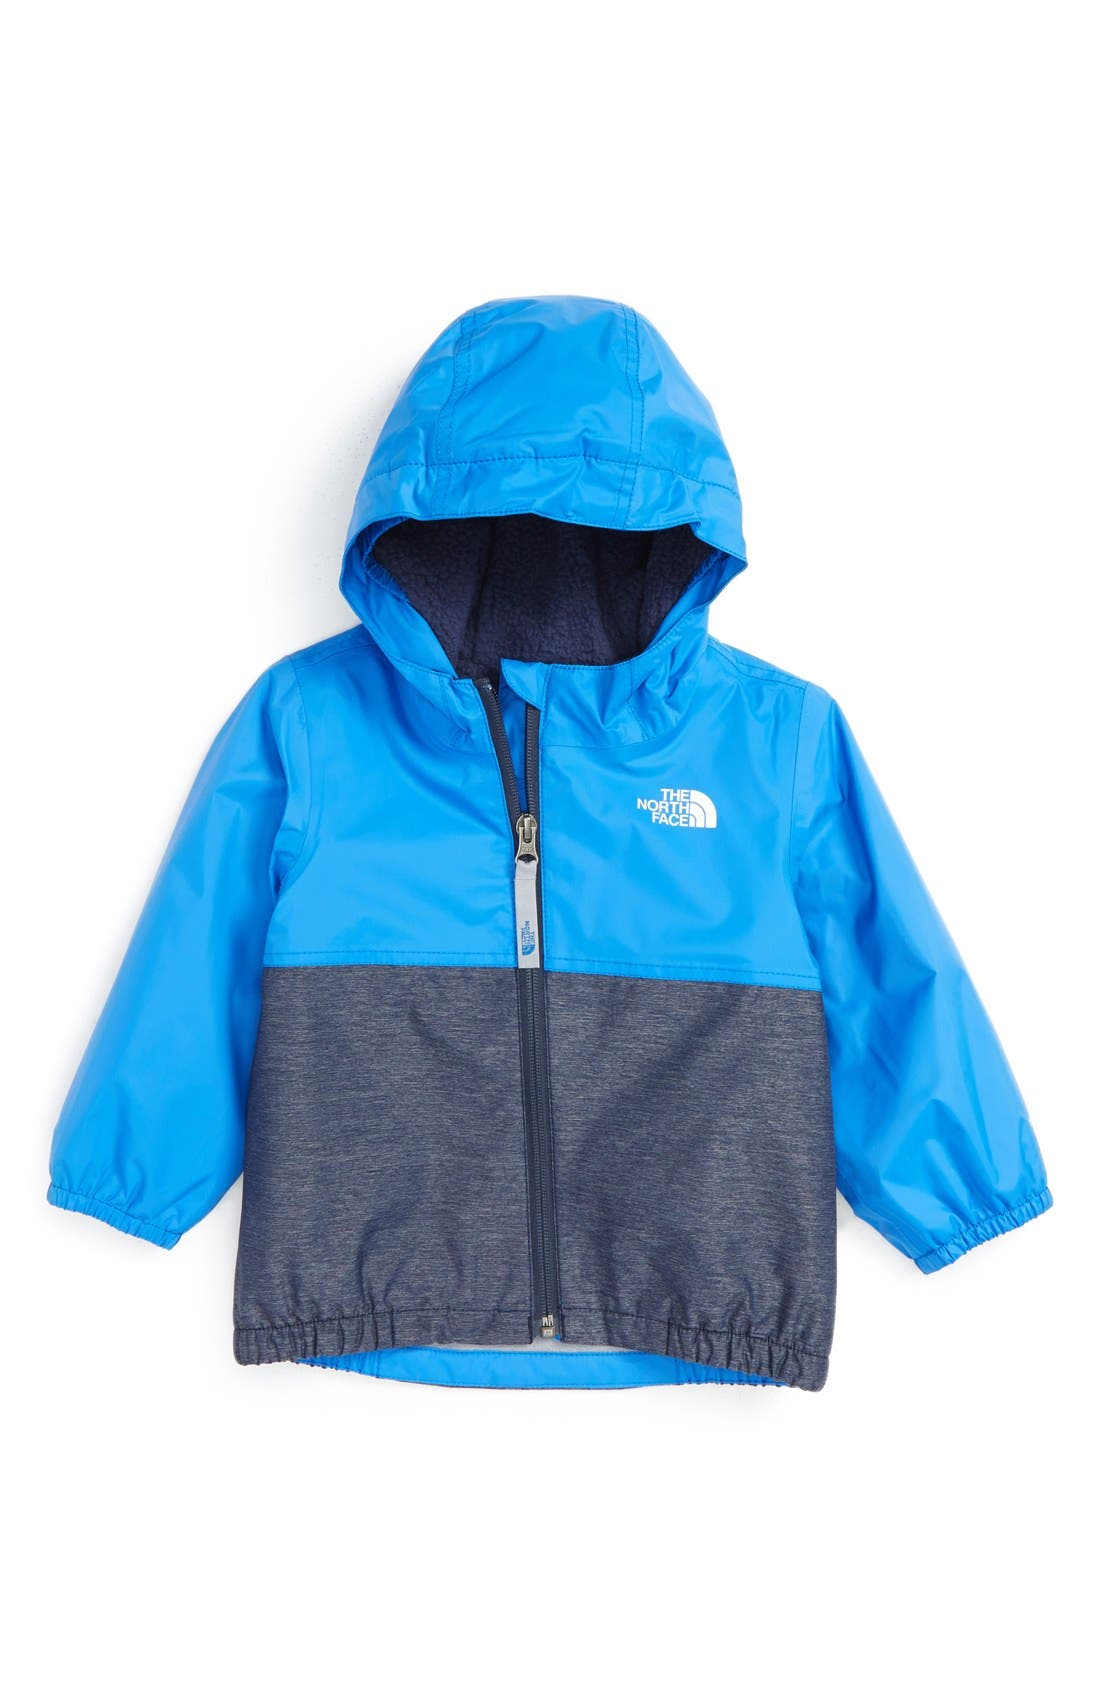 Alternate Image 1 Selected - The North Face 'Warm Storm' Hooded Waterproof Jacket (Baby Boys)